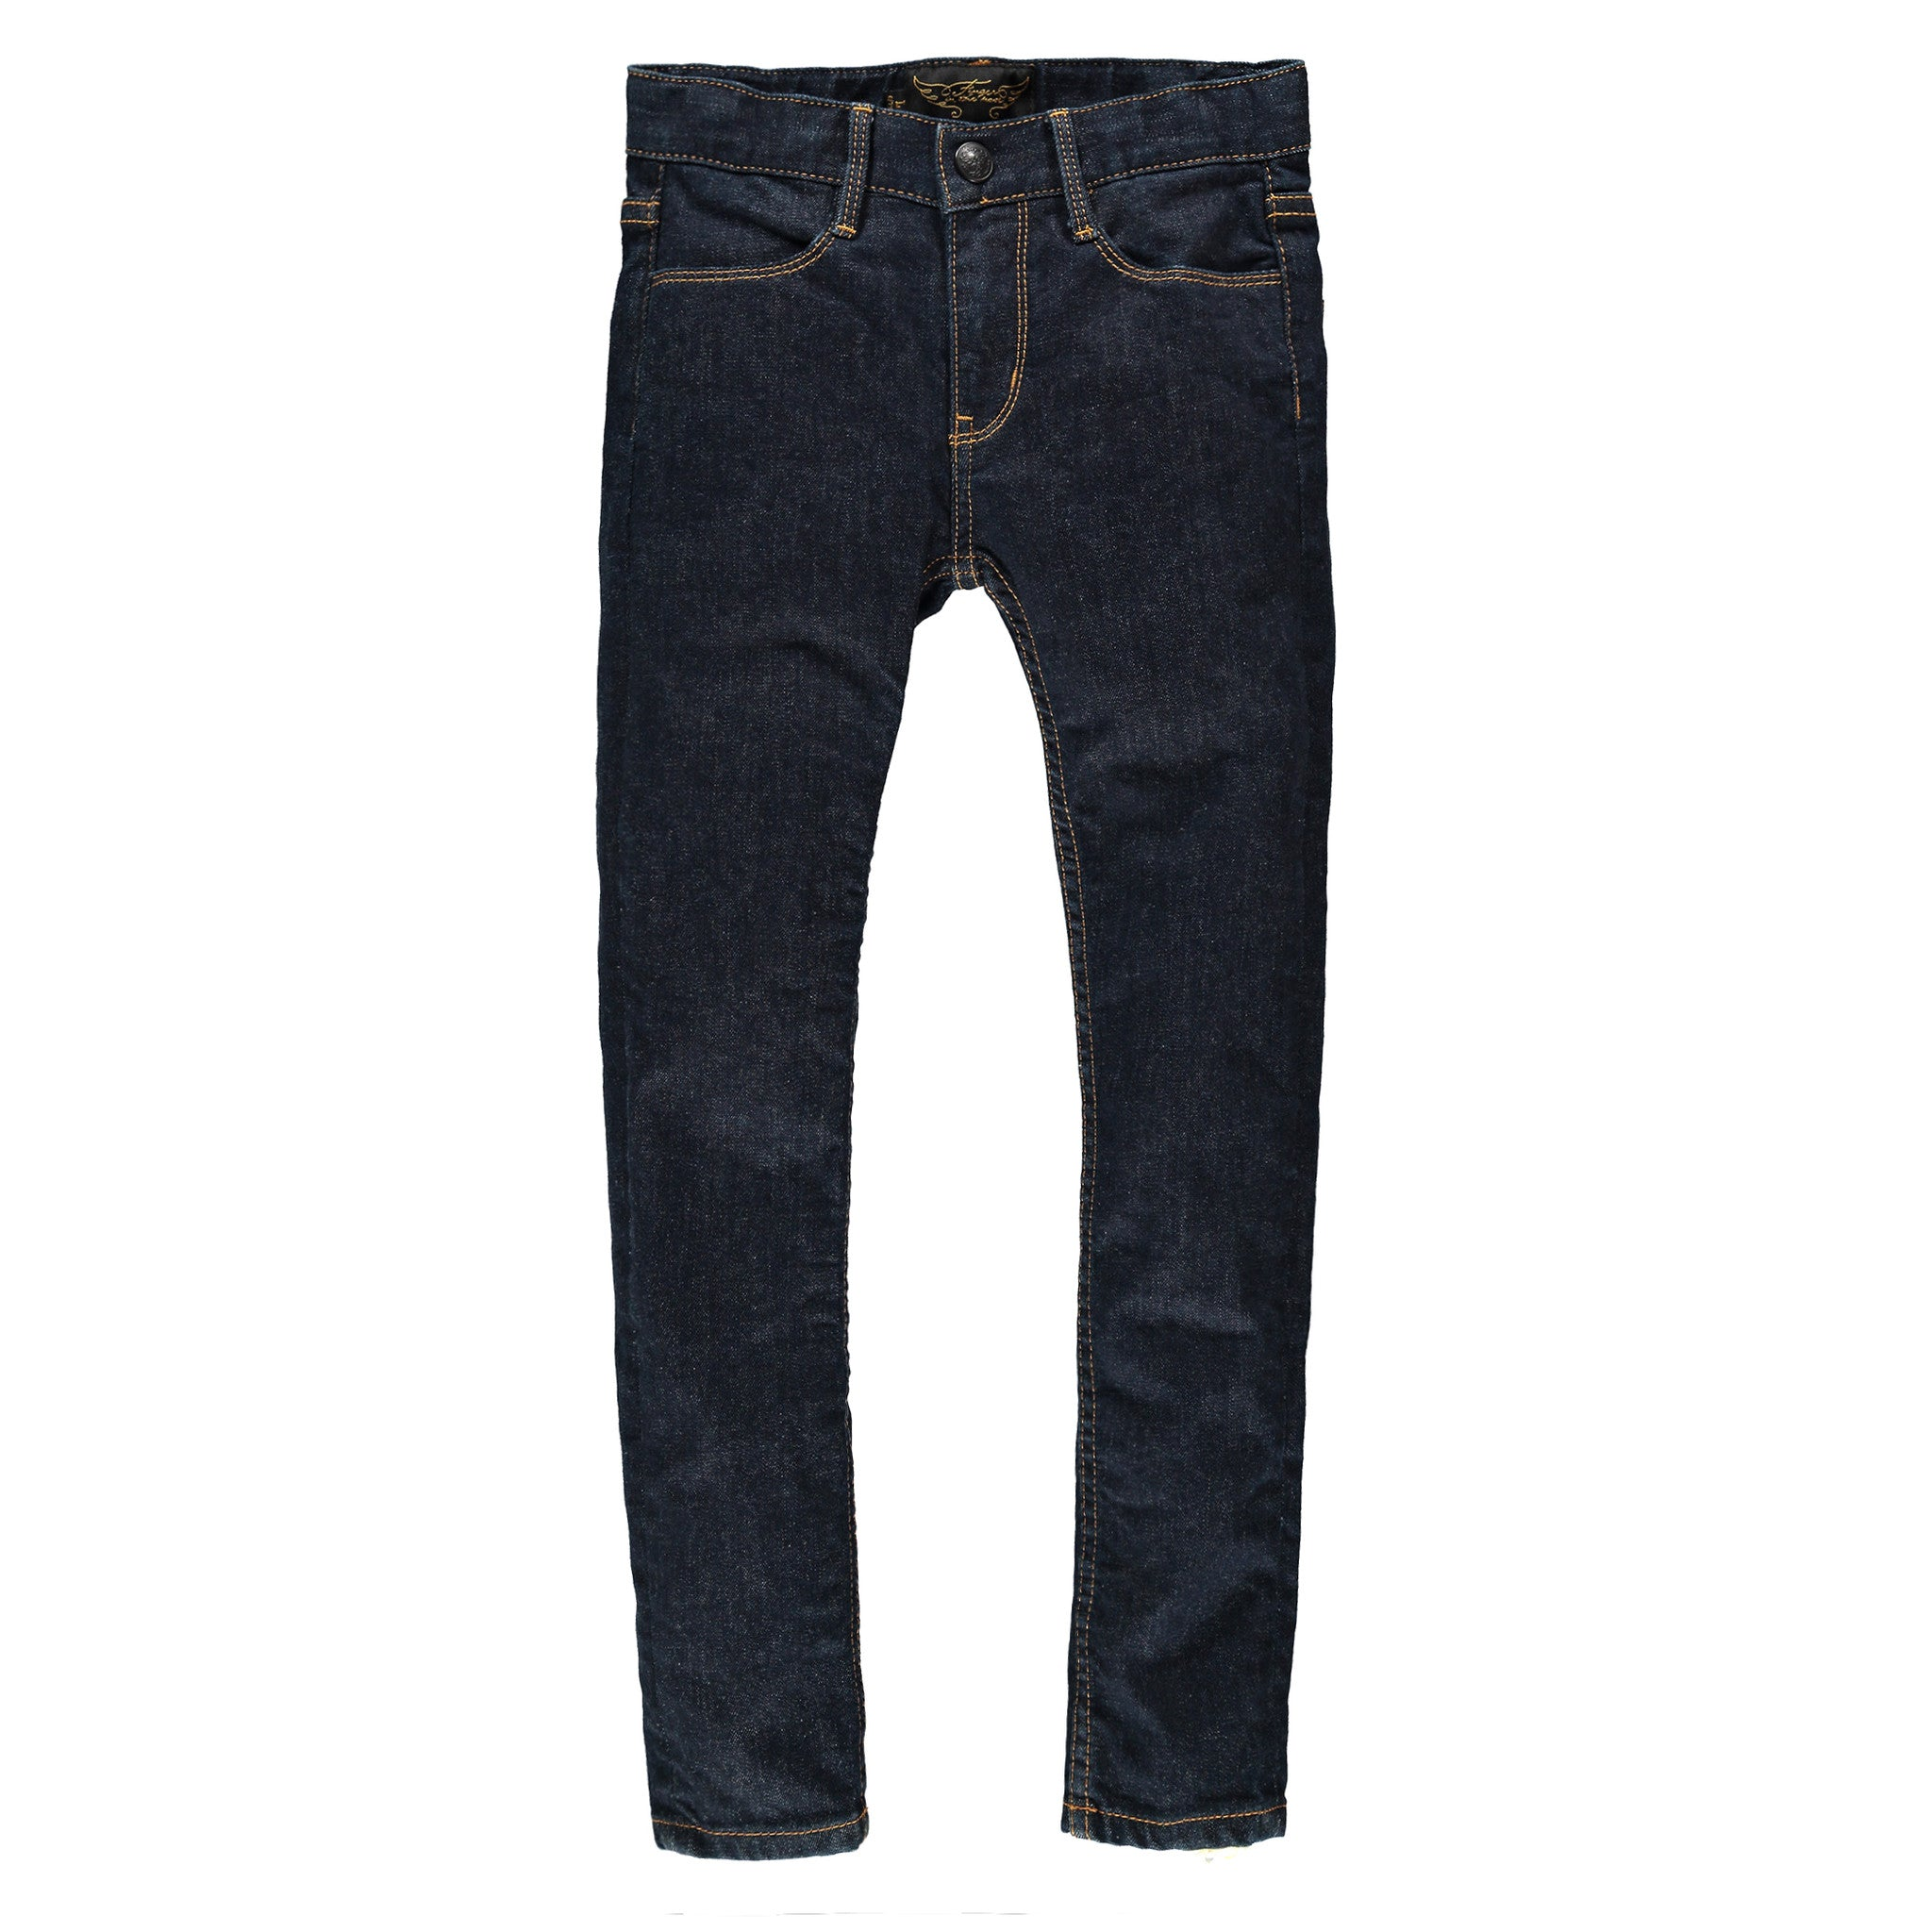 TAMA Raw Denim Blue - Unisex Skinny Fit Jean